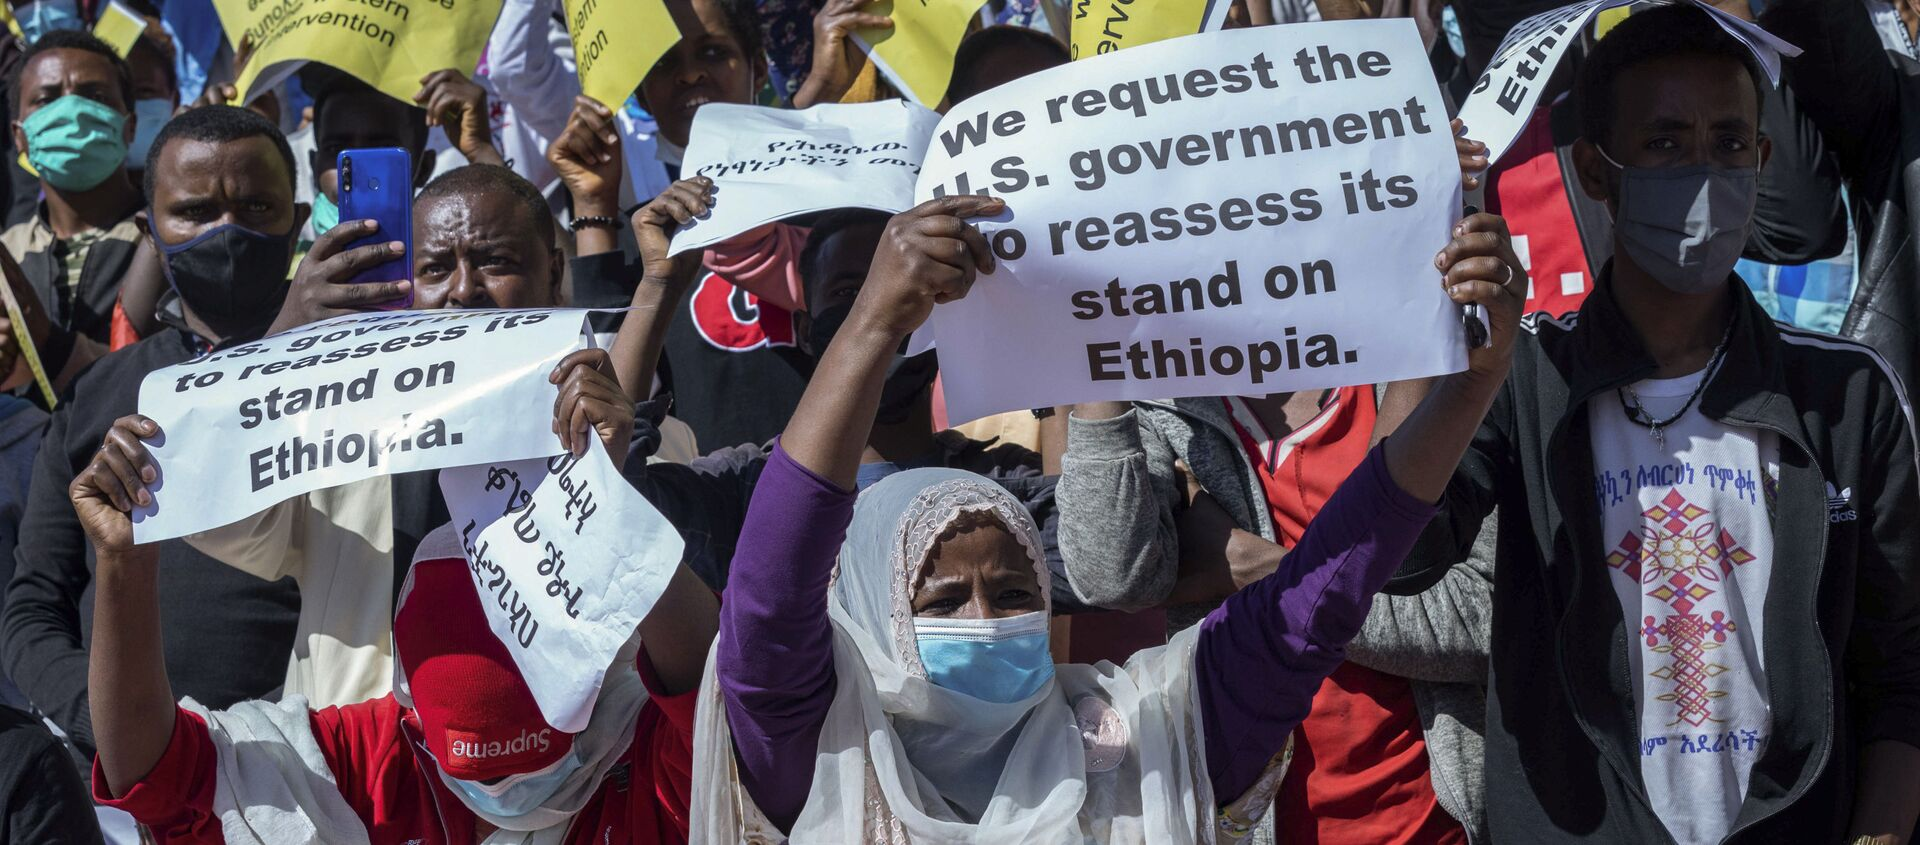 Ethiopians protest against US sanctions on the government over the conflict in Tigray on 30 May 2021. - Sputnik International, 1920, 01.06.2021